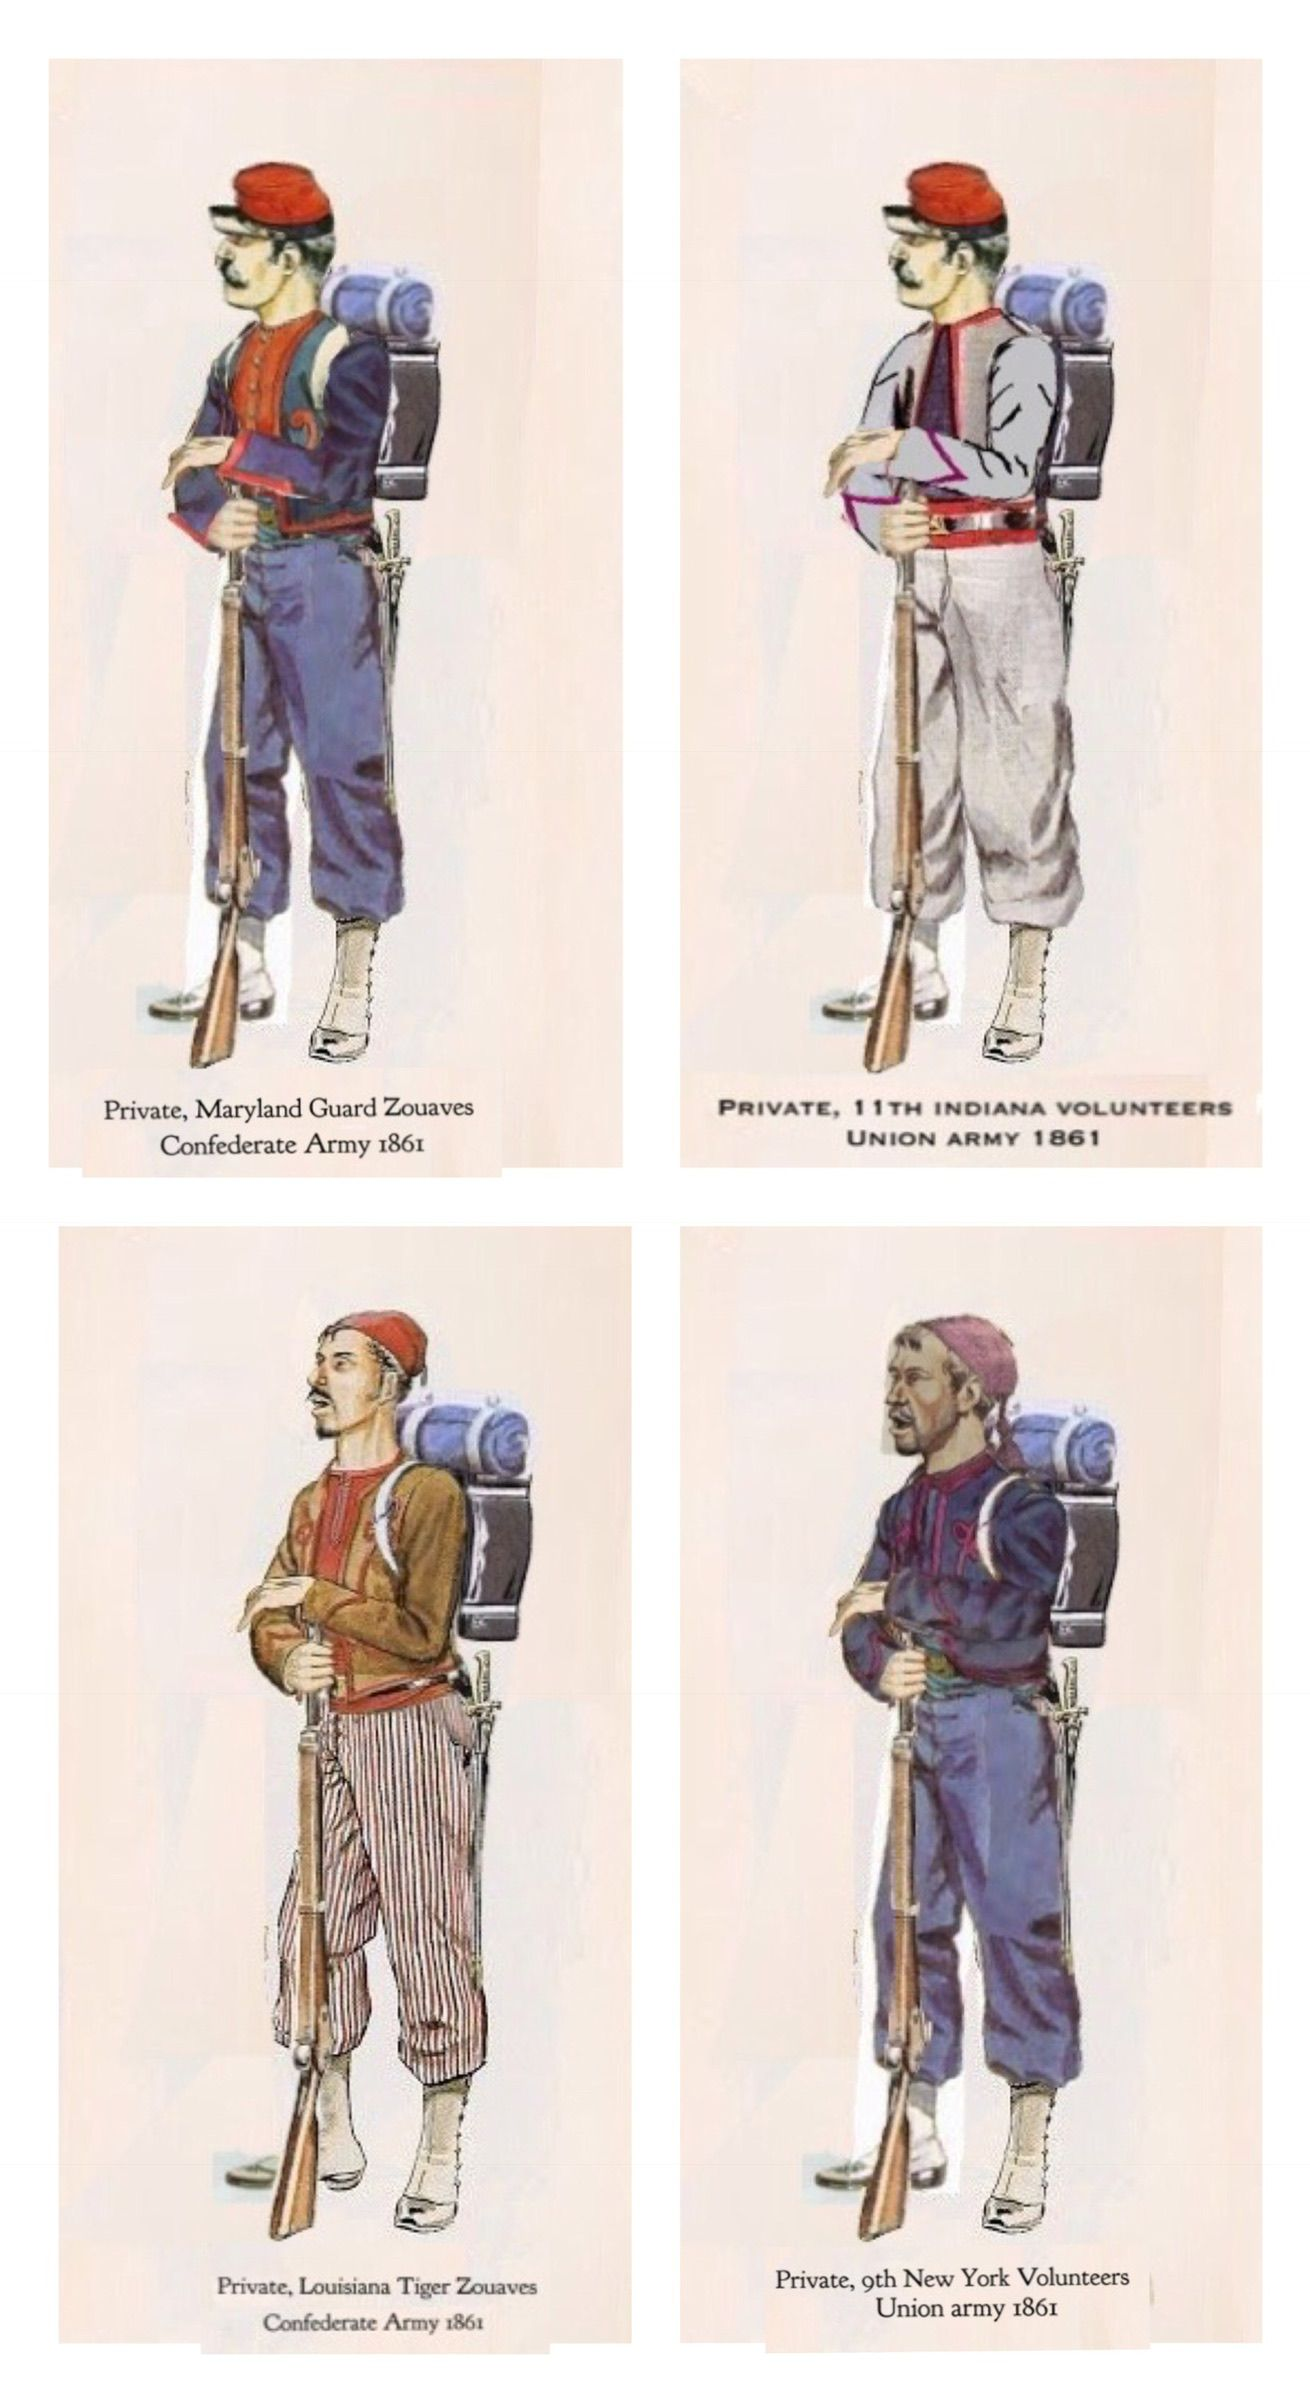 The Blue And The Grey Zouaves Of The American Civil War Sometimes Wore Uniforms That Were